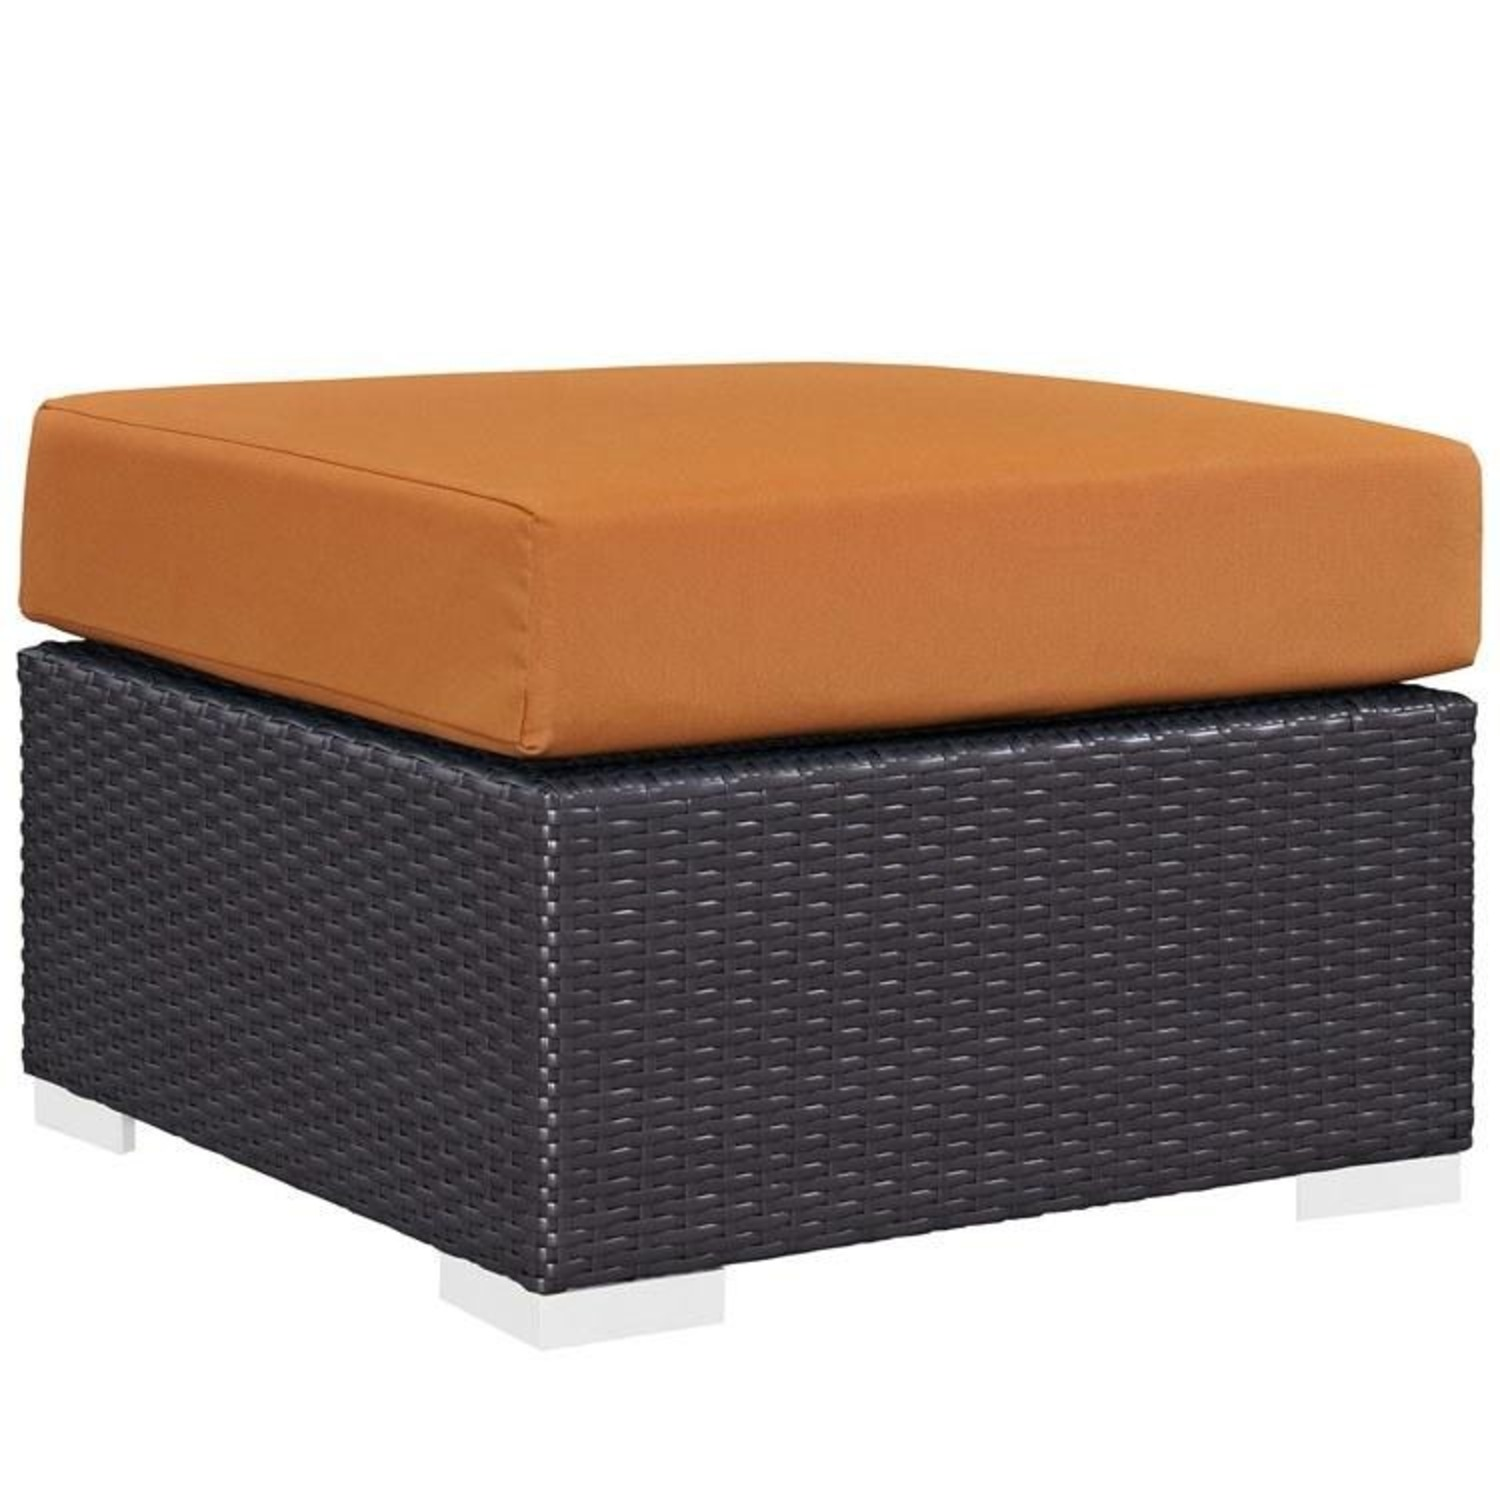 6-Piece Outdoor Sectional In Orange Fabric - image-3